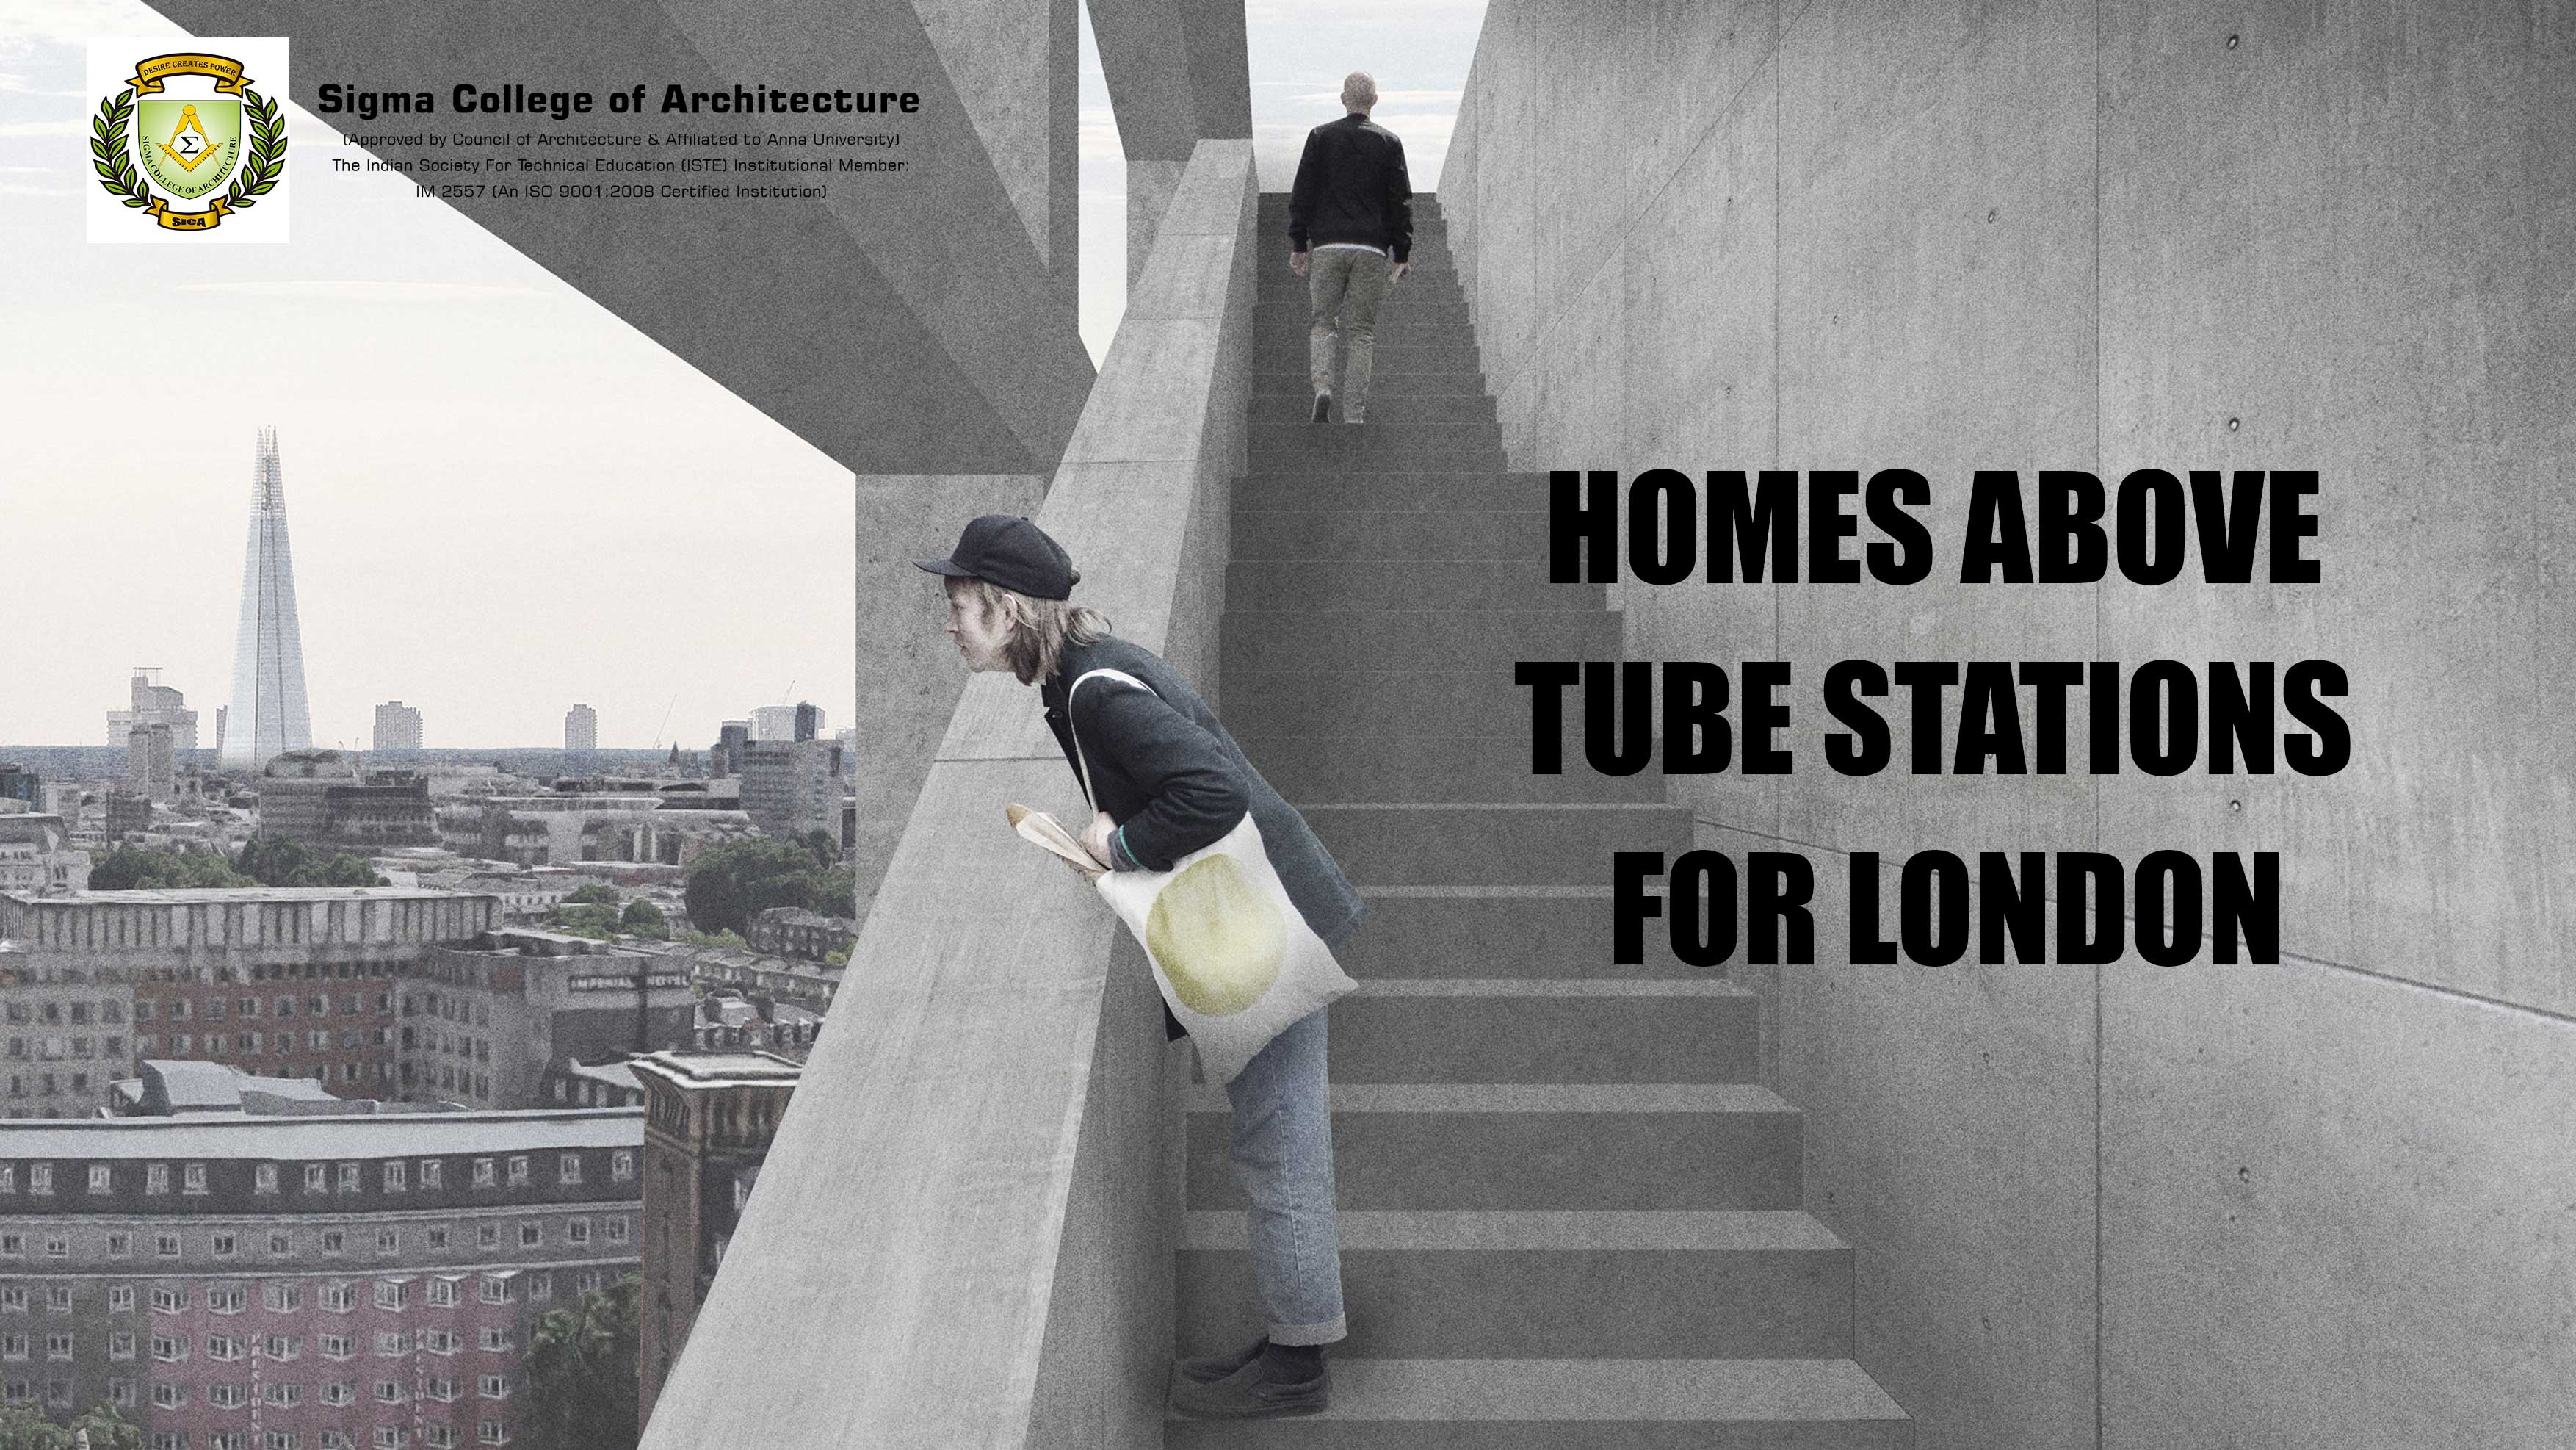 Homes Above Tube Stations for London